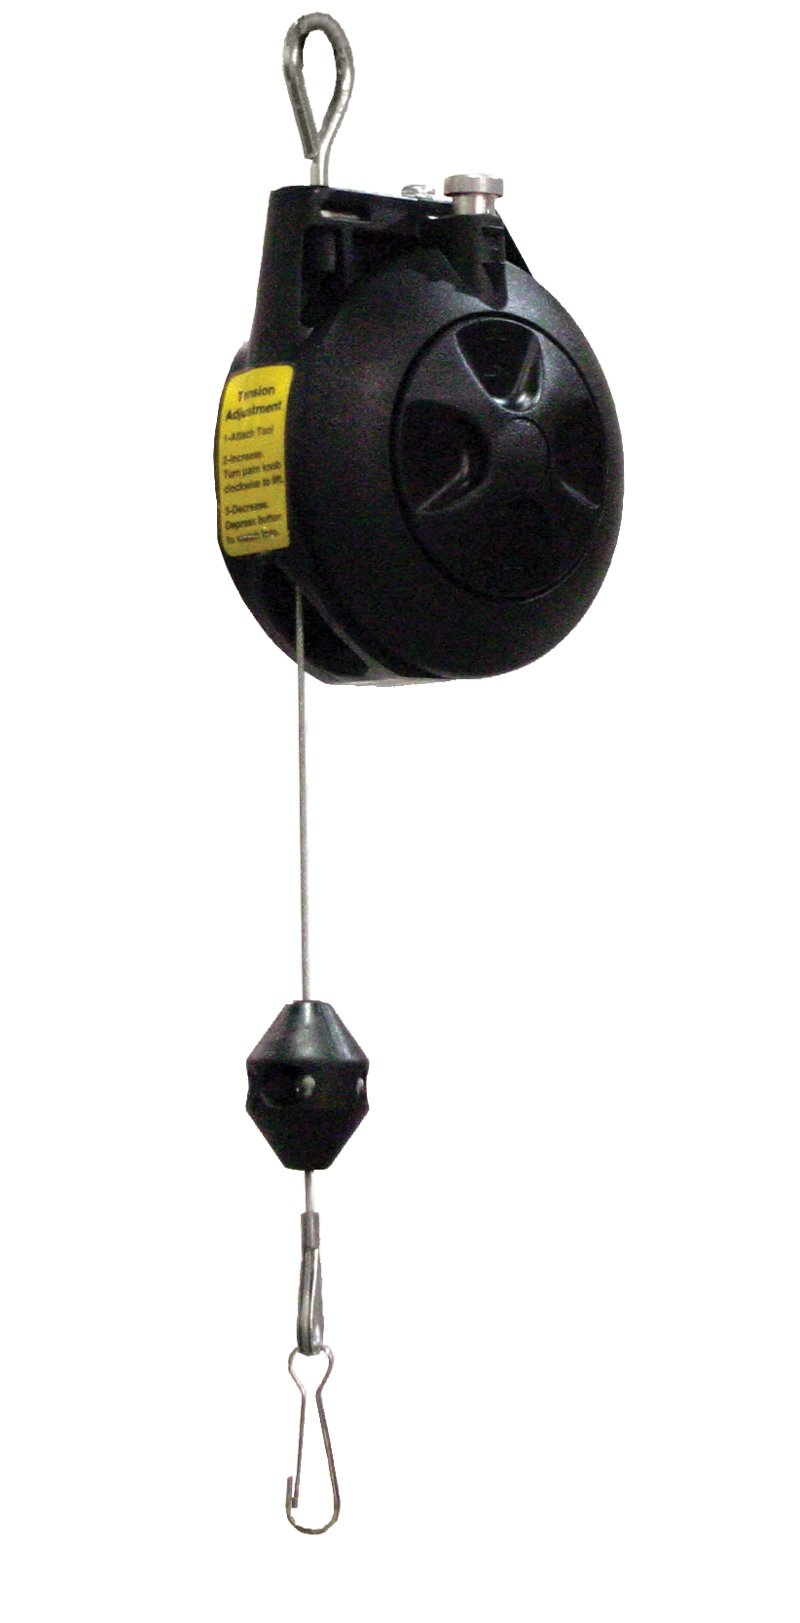 Tool Balancer with Cable, 6ft, 0-1.5 lbs